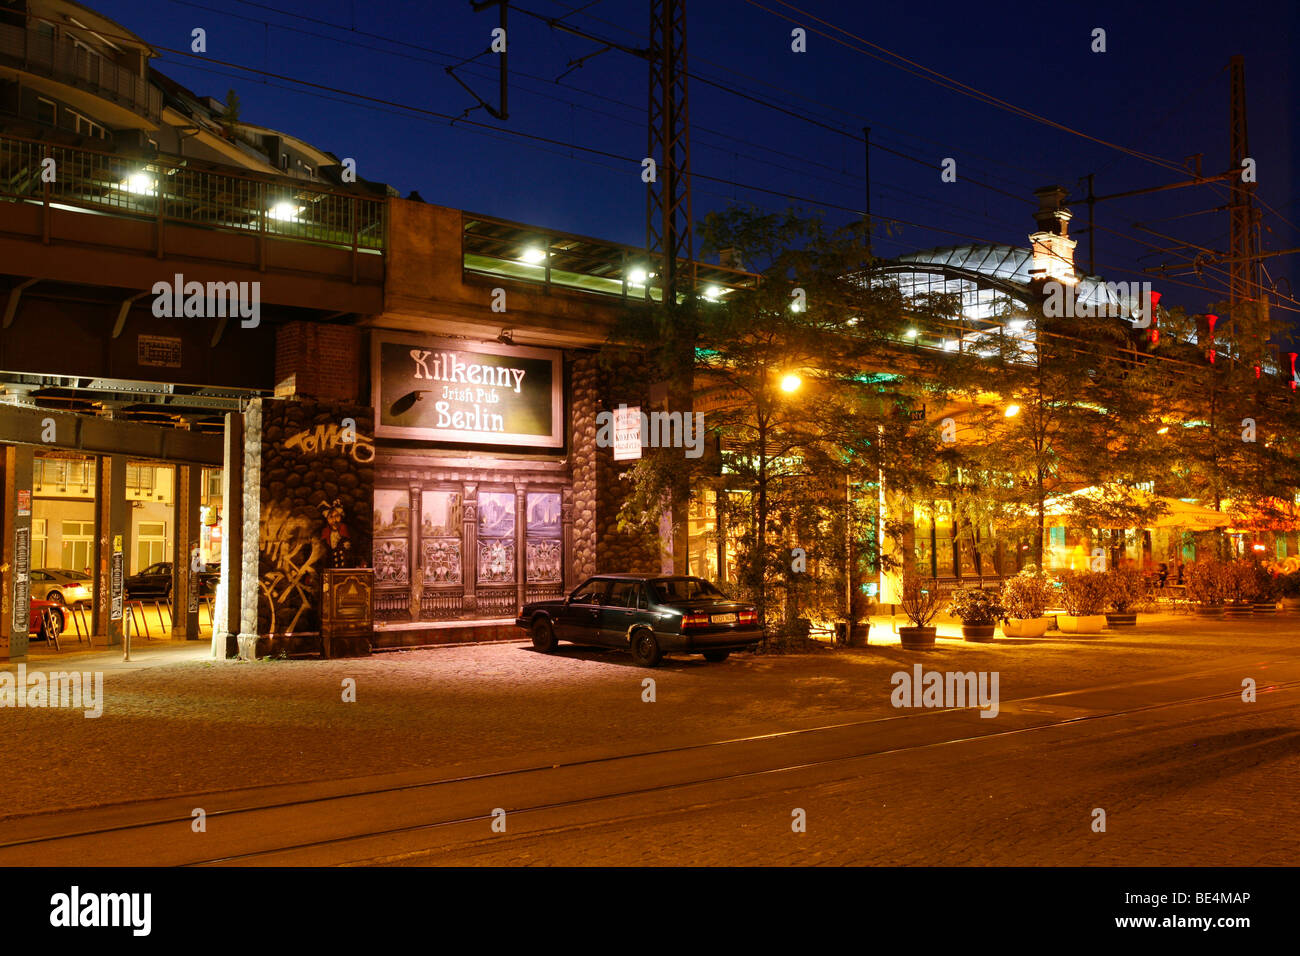 S-Bahnhof Hackescher Markt station with illumination for a pub at night, Mitte, Berlin, Germany, Europe - Stock Image